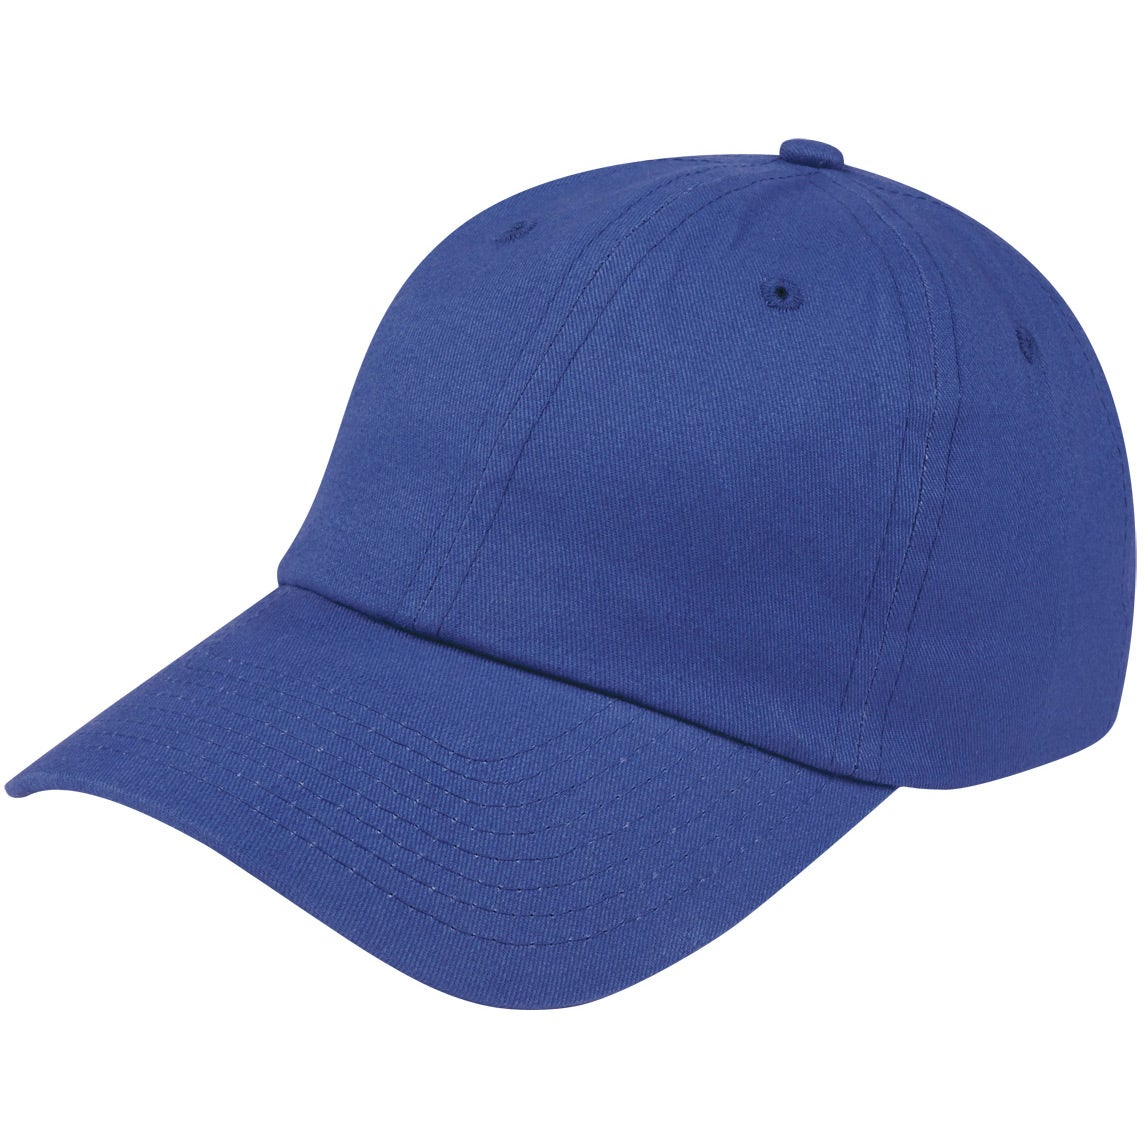 Find great deals on eBay for twill cap. Shop with confidence.